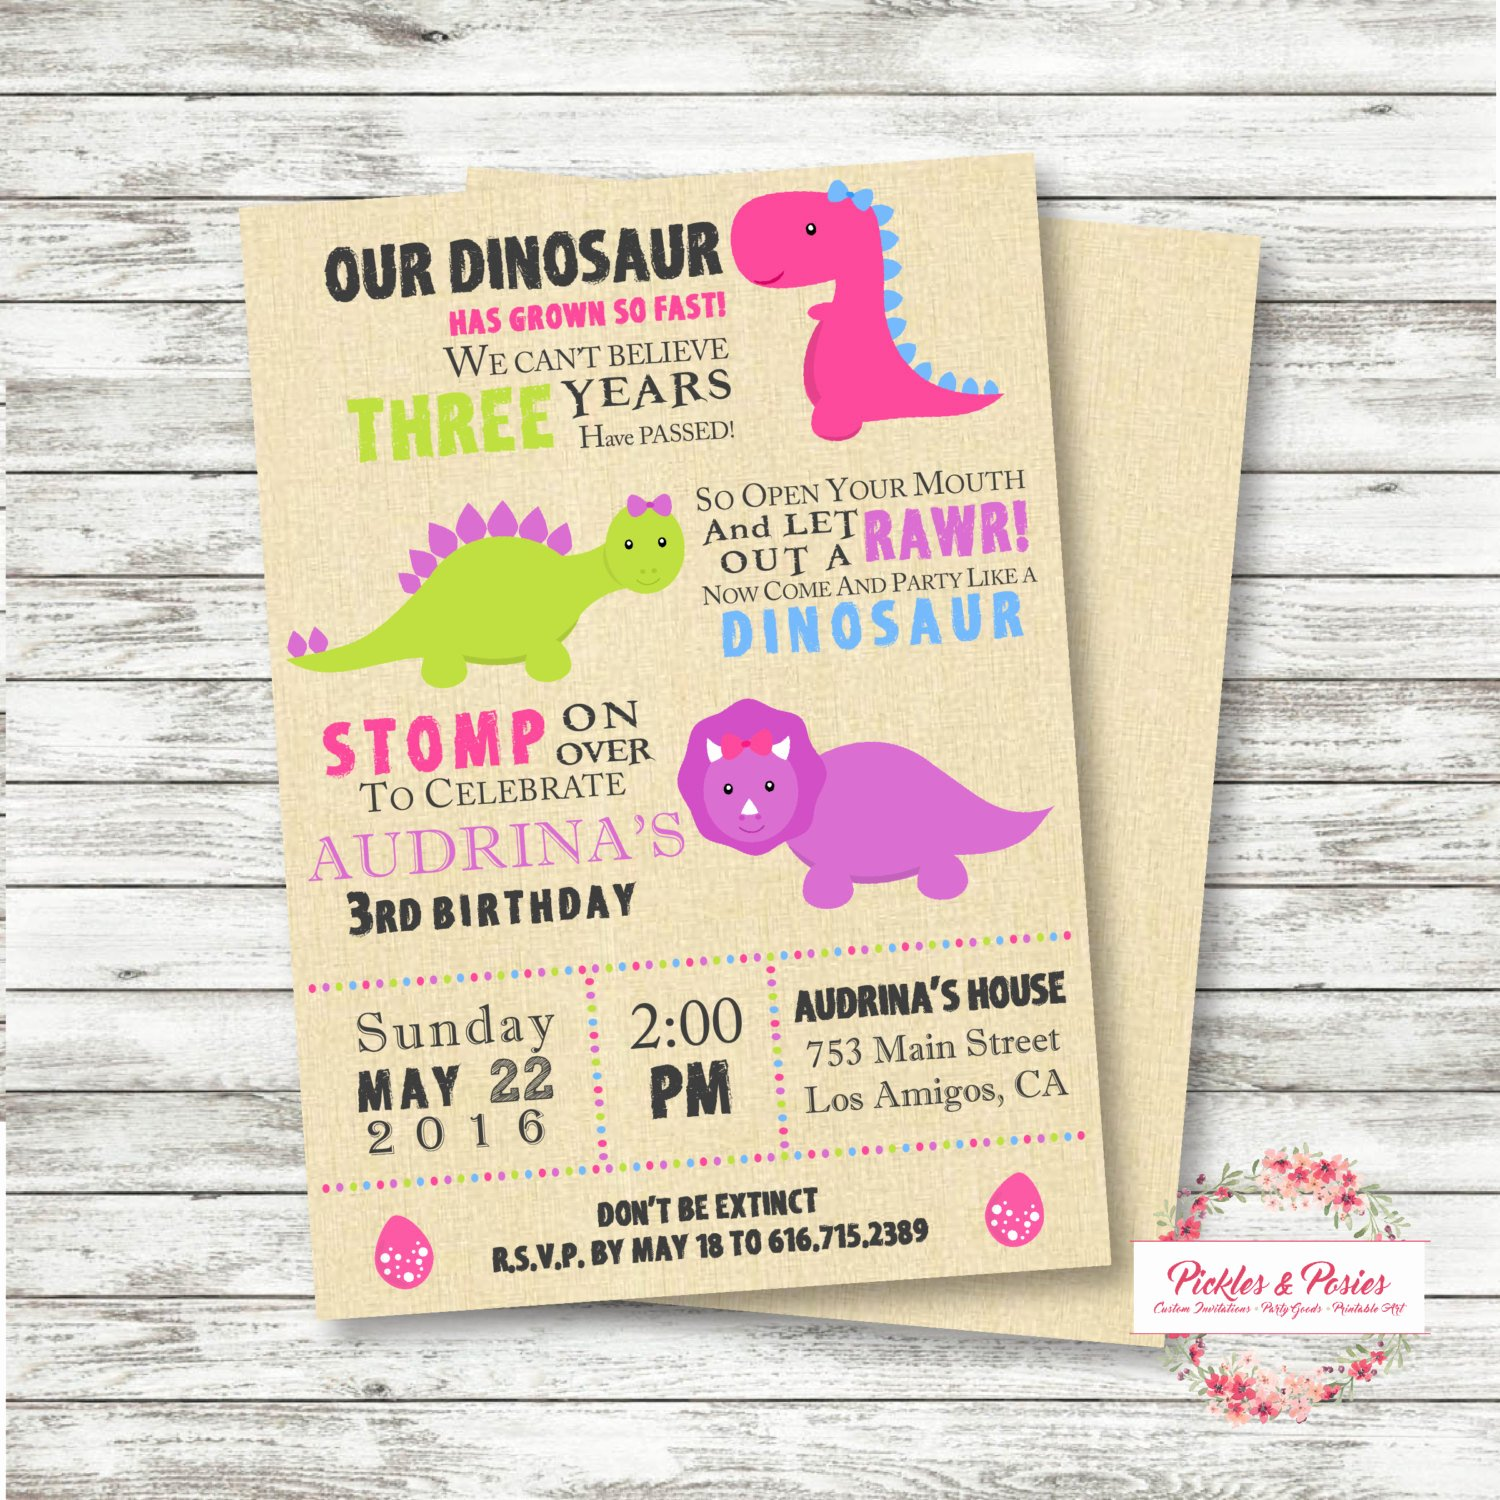 Dinosaur Birthday Invitations Free Awesome Girls Dinosaur Birthday Invitation Pink Dinosaur Invitation